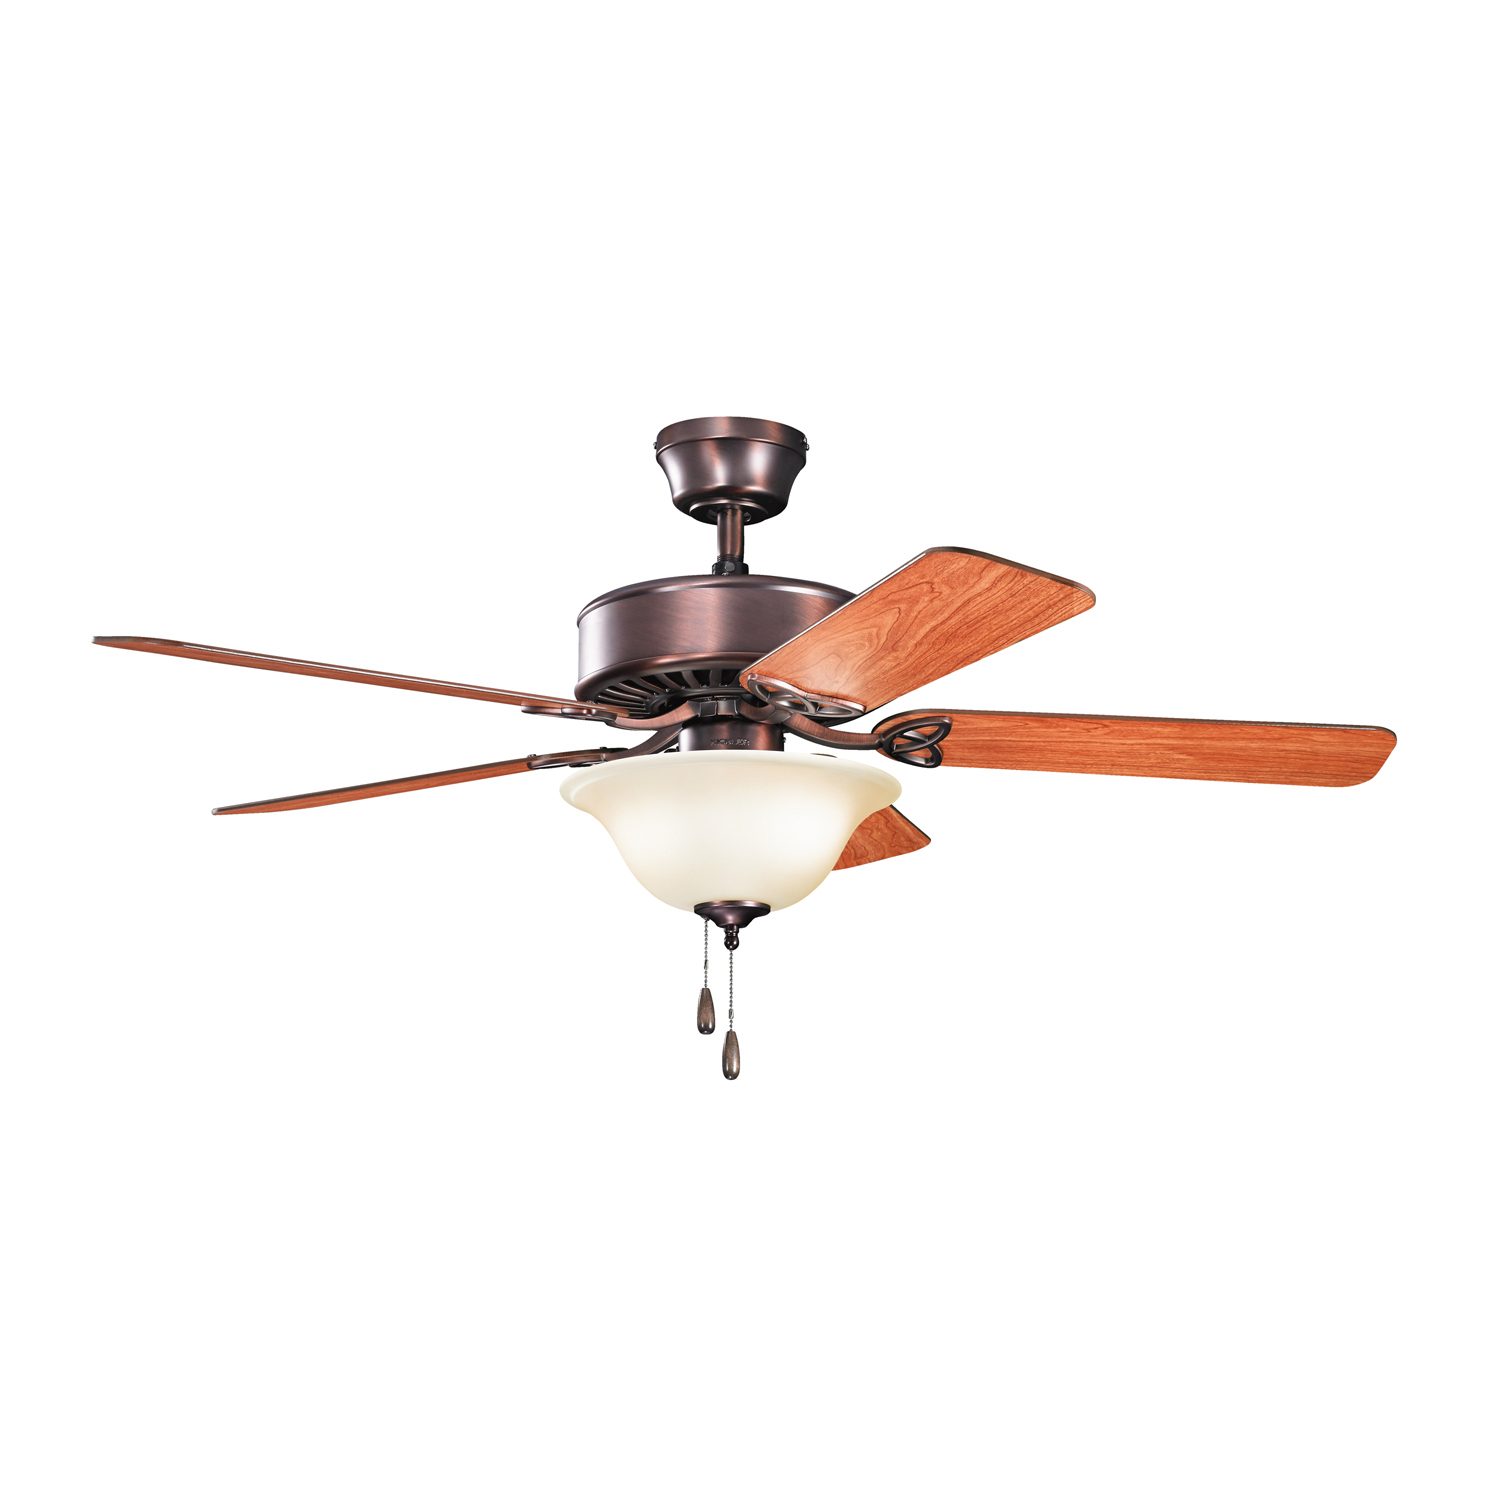 50 inchCeiling Fan from the ES collection by Kichler 330103OBBU